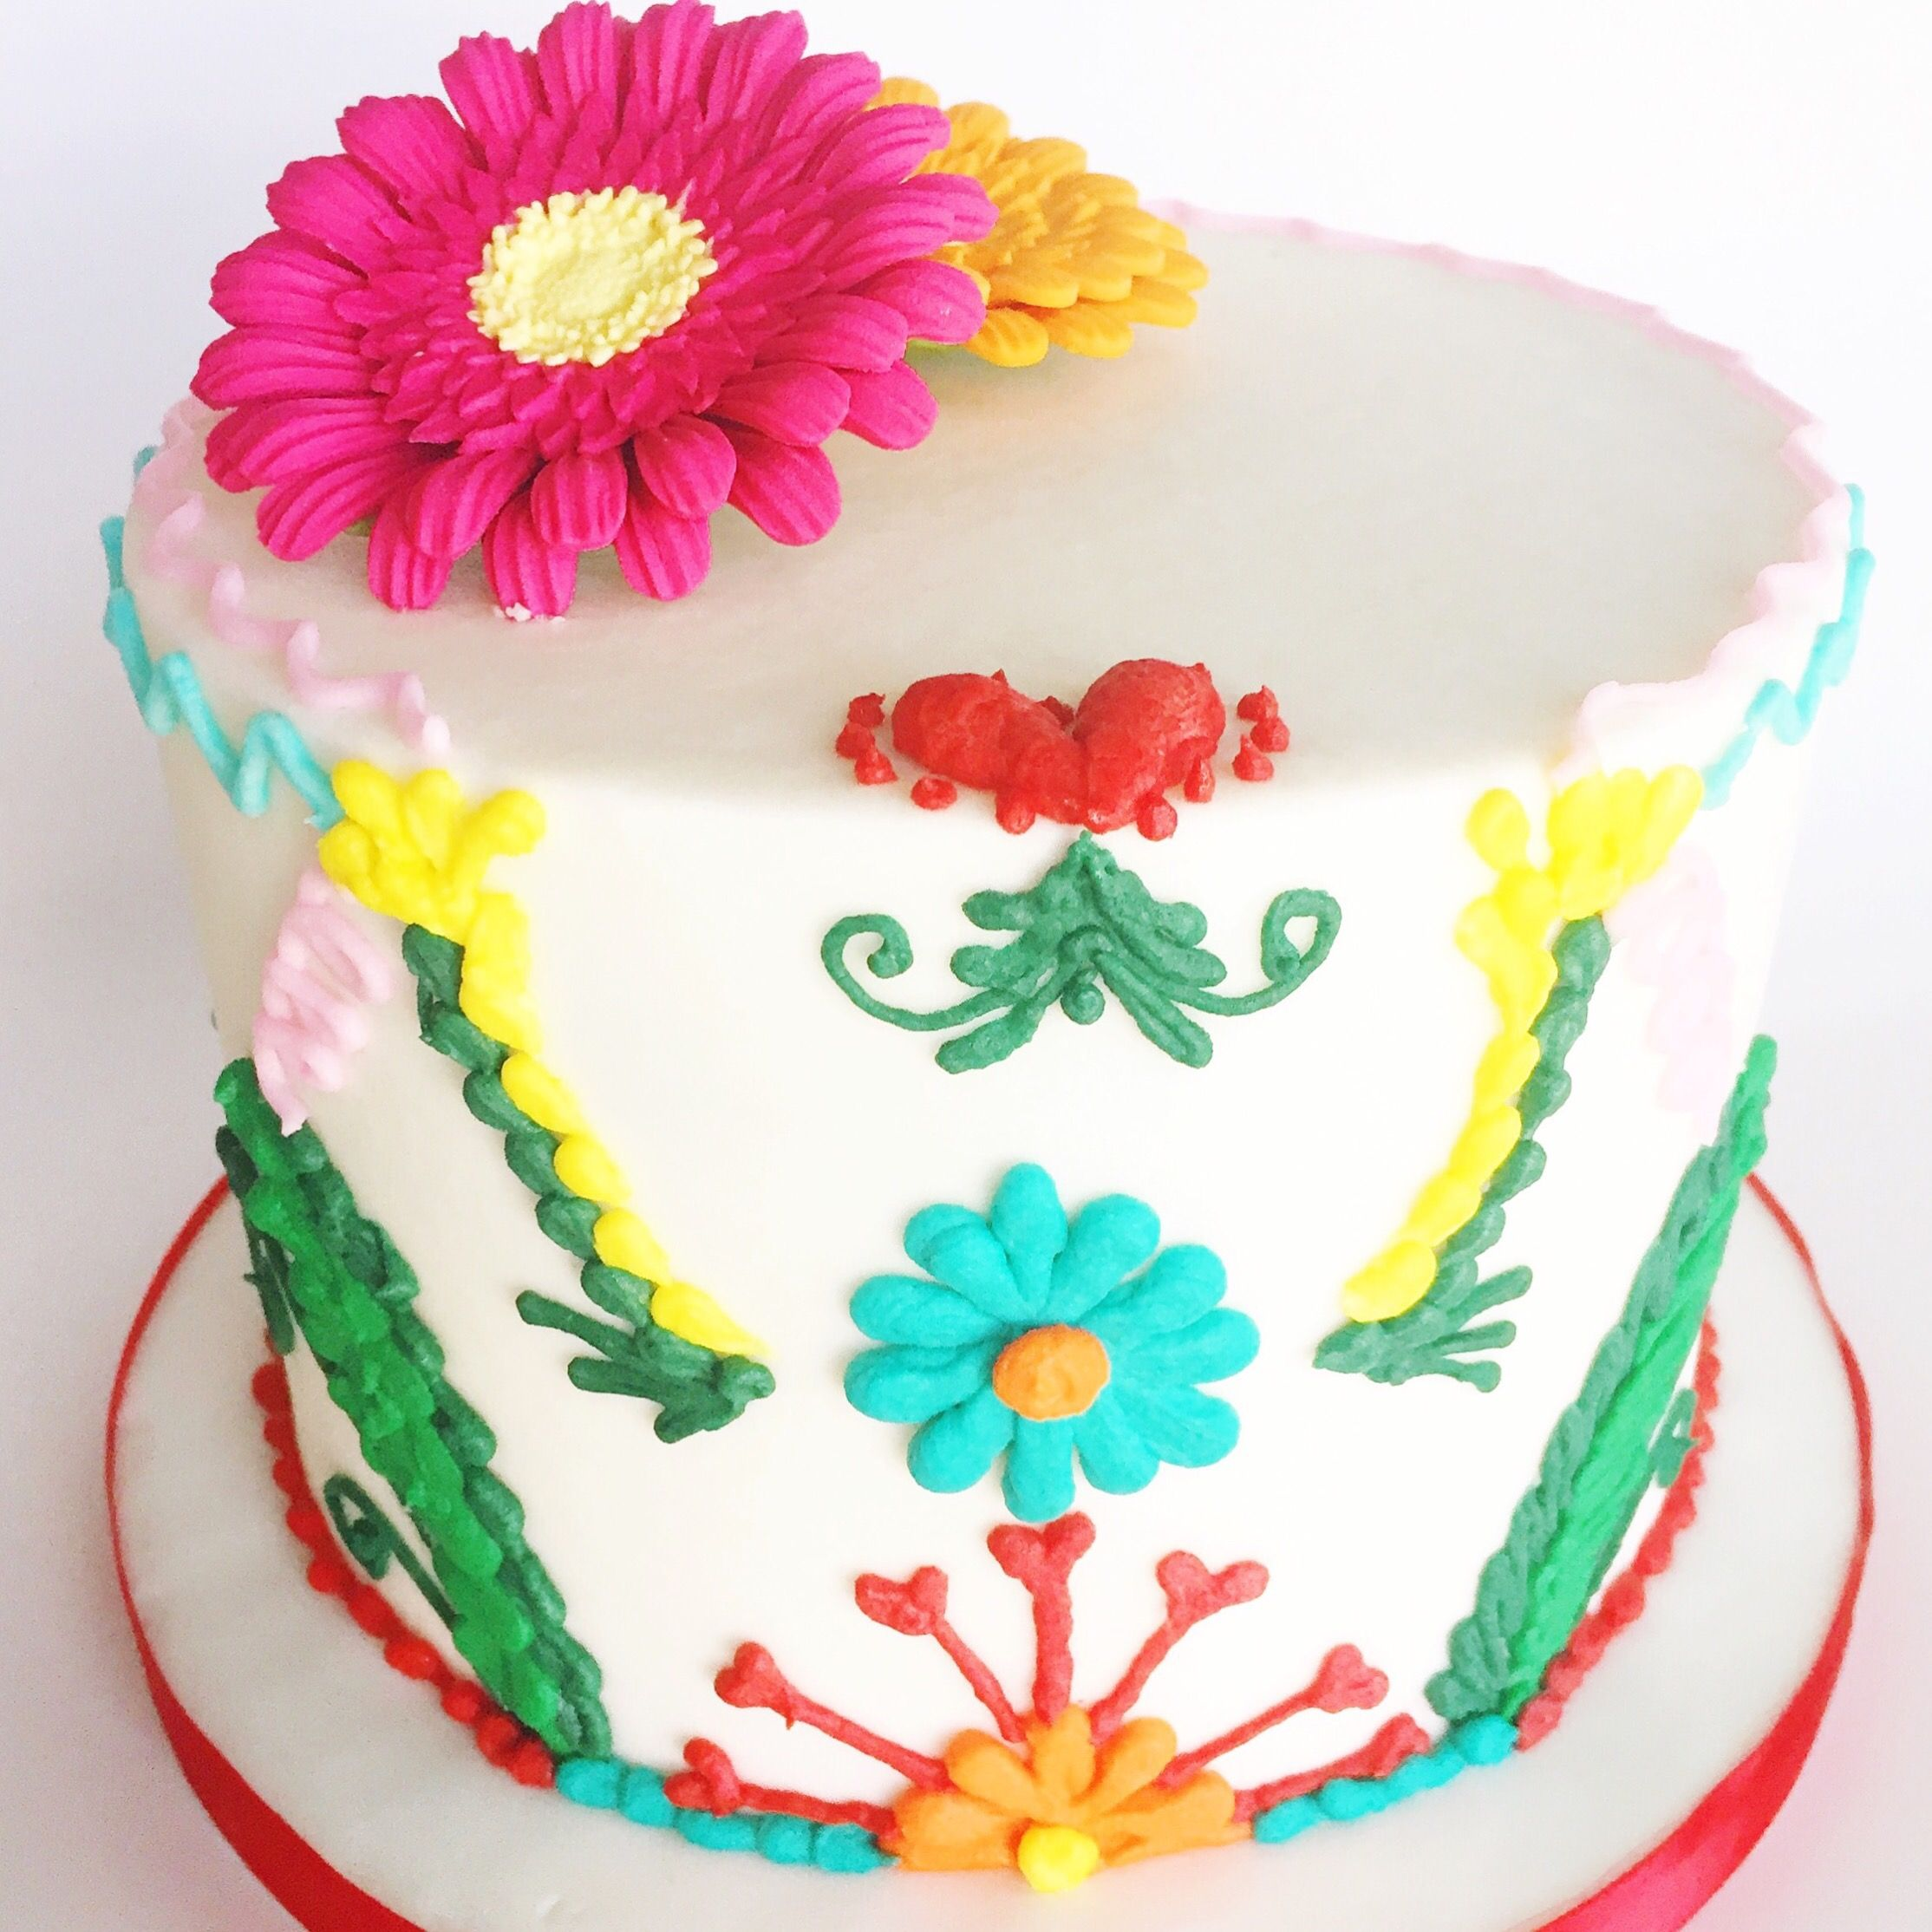 Spanish Themed Birthday Cake Miss Retail Therapist Blog